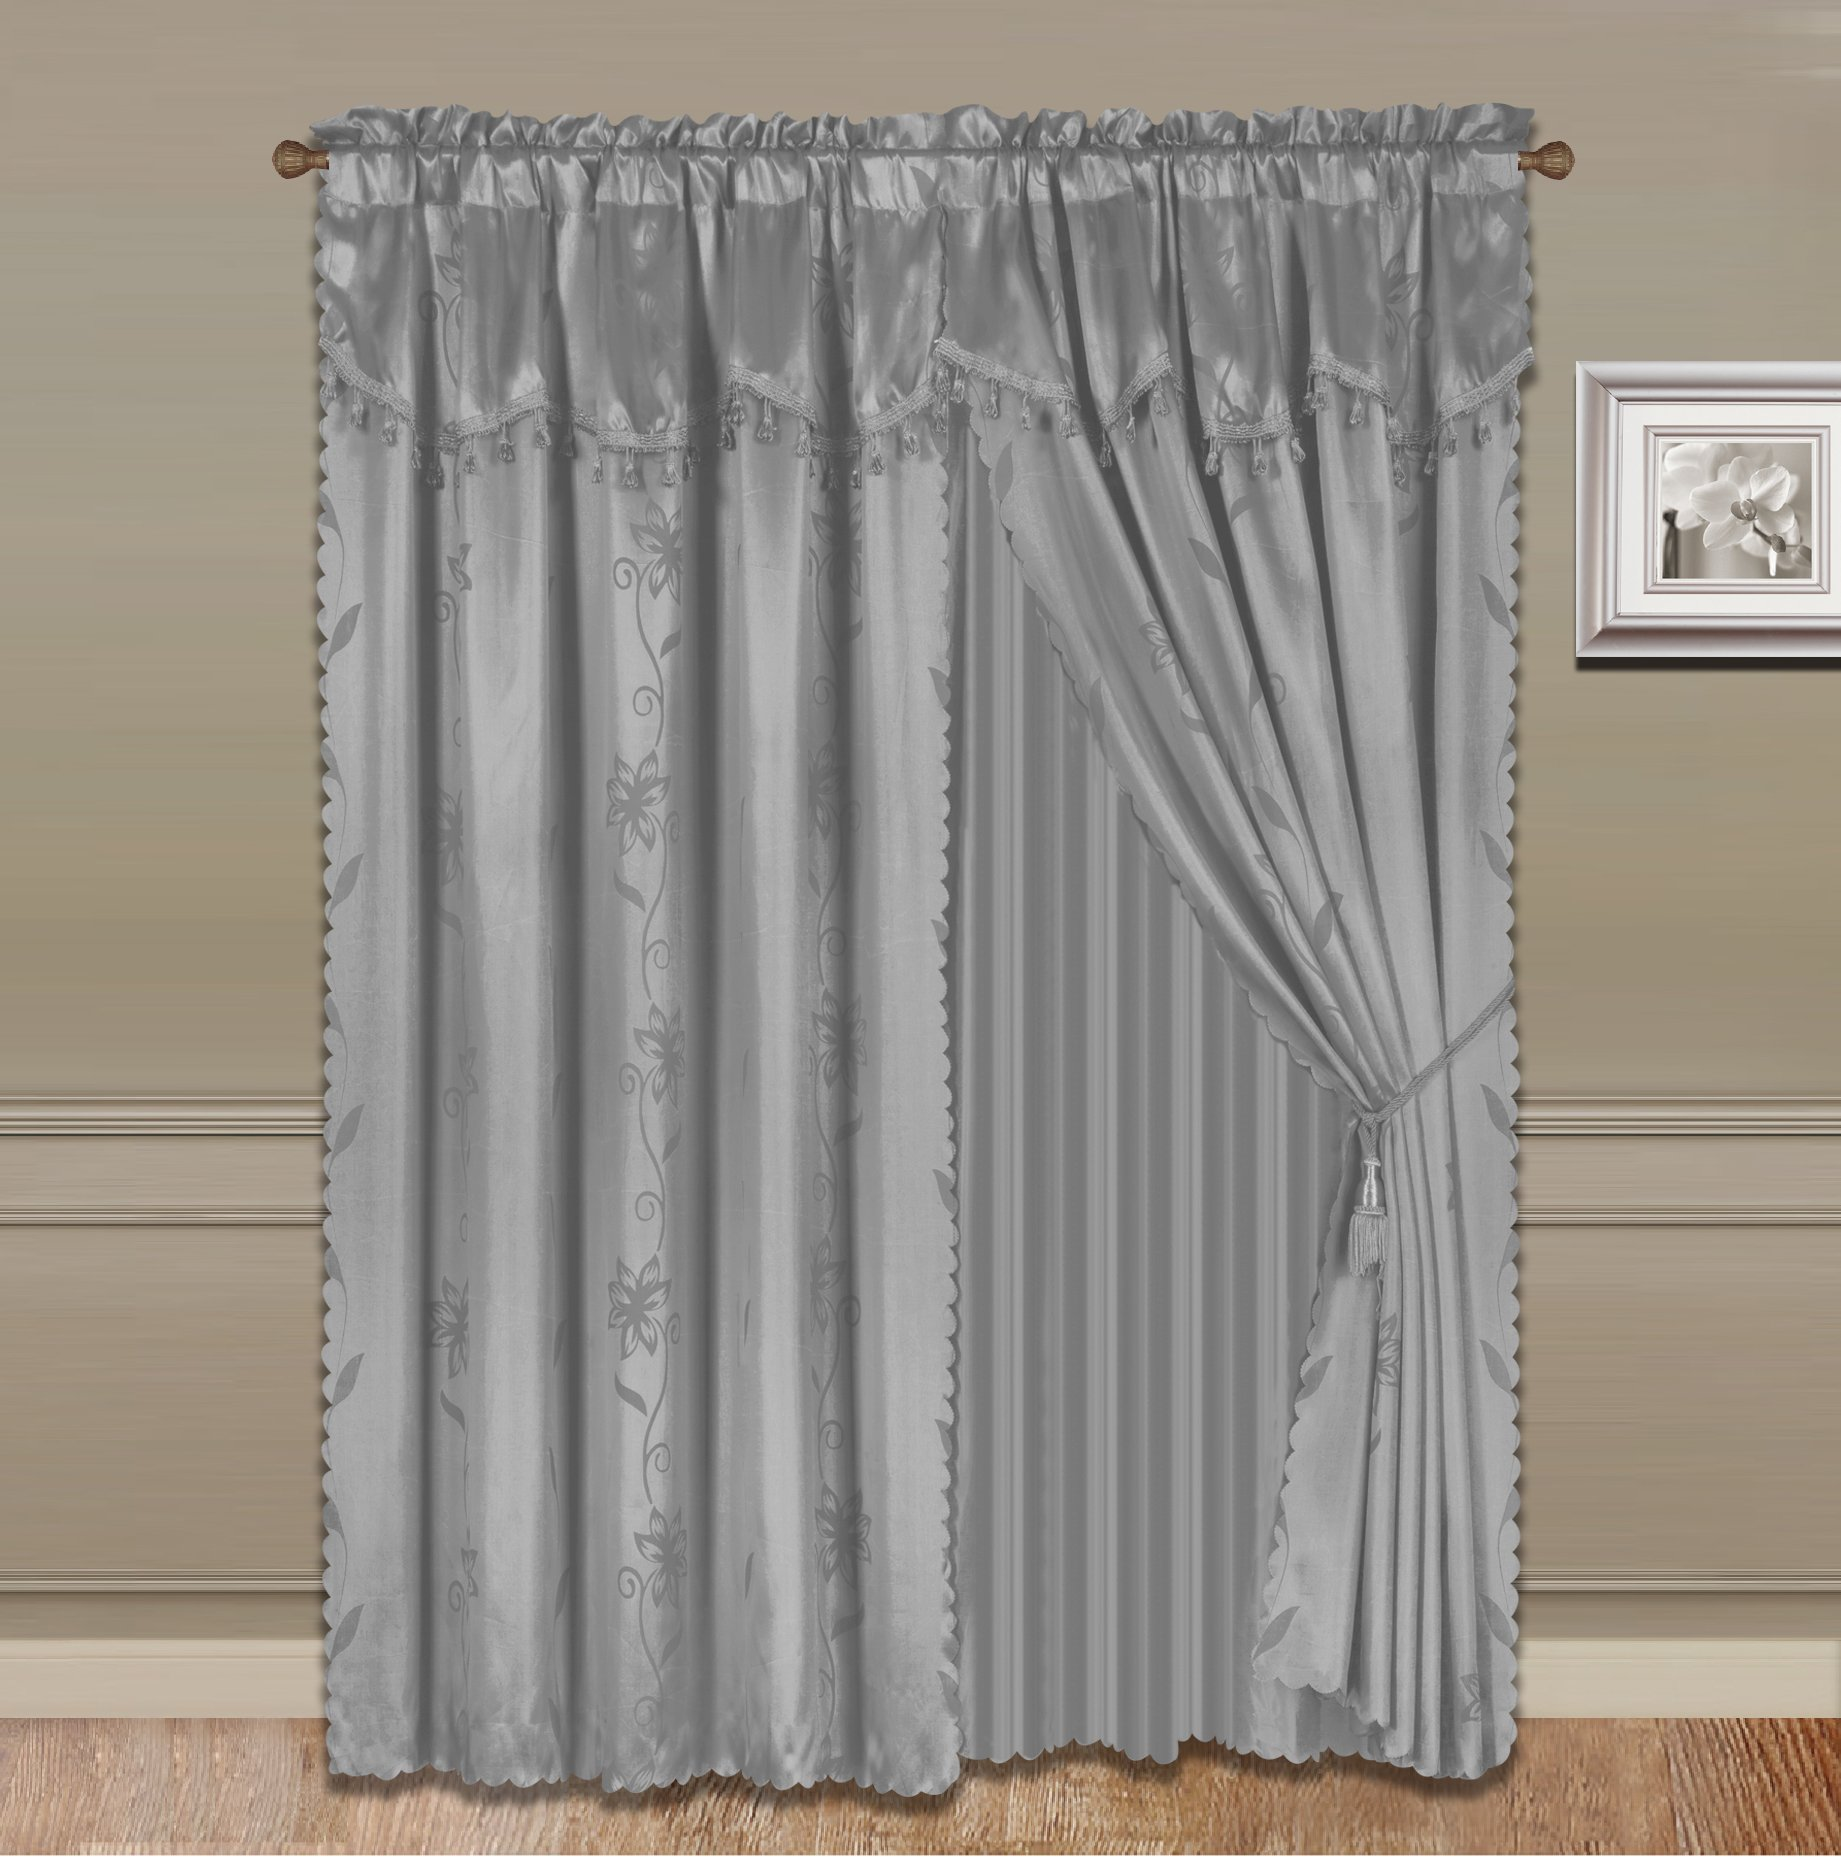 GorgeousHomeLinen 8-Piece Silver Nada Luxury Faux Jacquard Flower Design Panel, Rod Pocket Window Curtain Set Attached Valance, Panel, And Sheer- Includes 2 Tassels